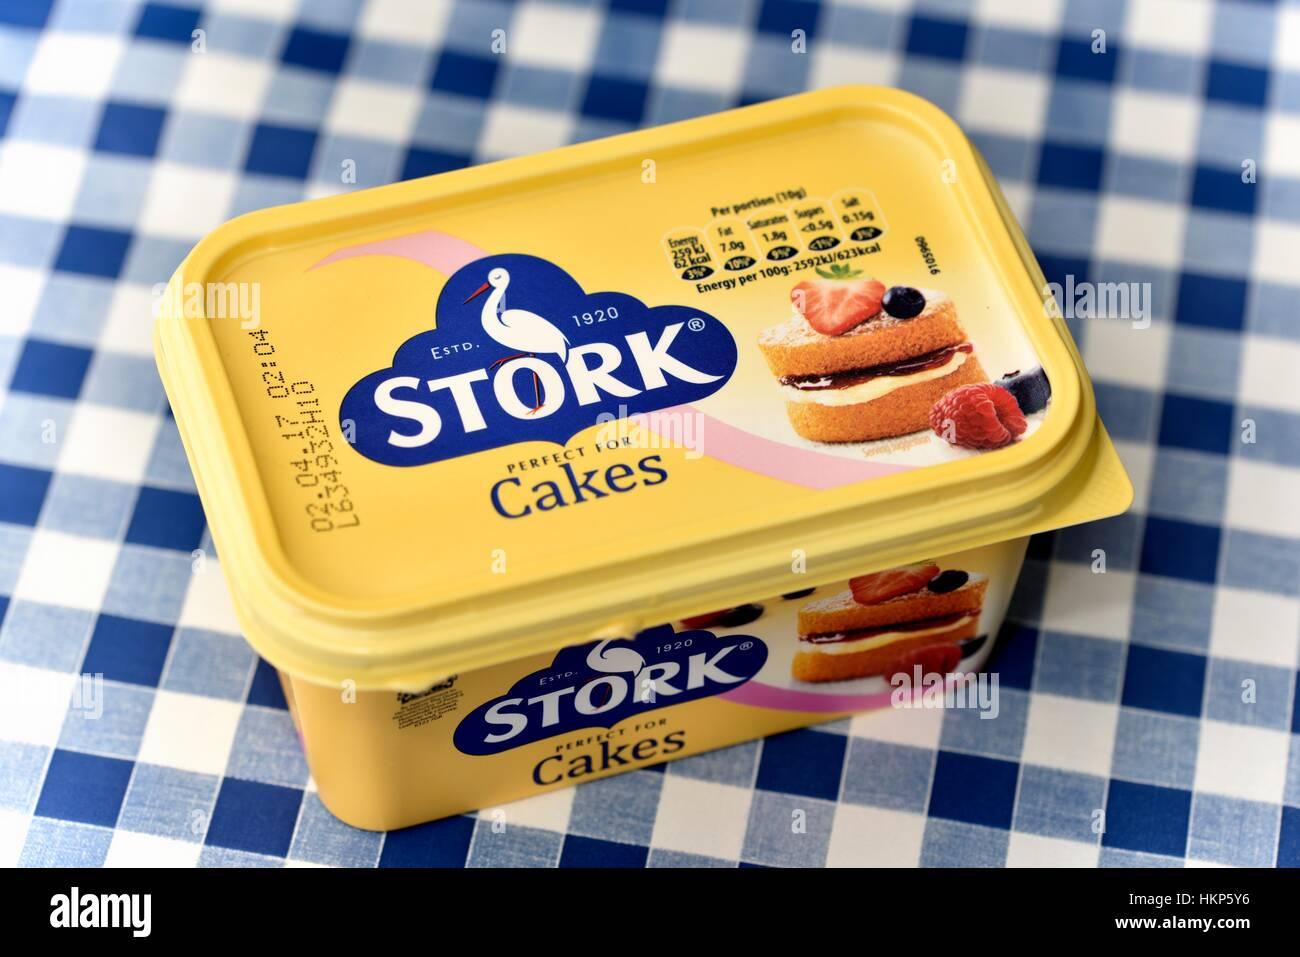 Stork margarine perfect for cakes. - Stock Image